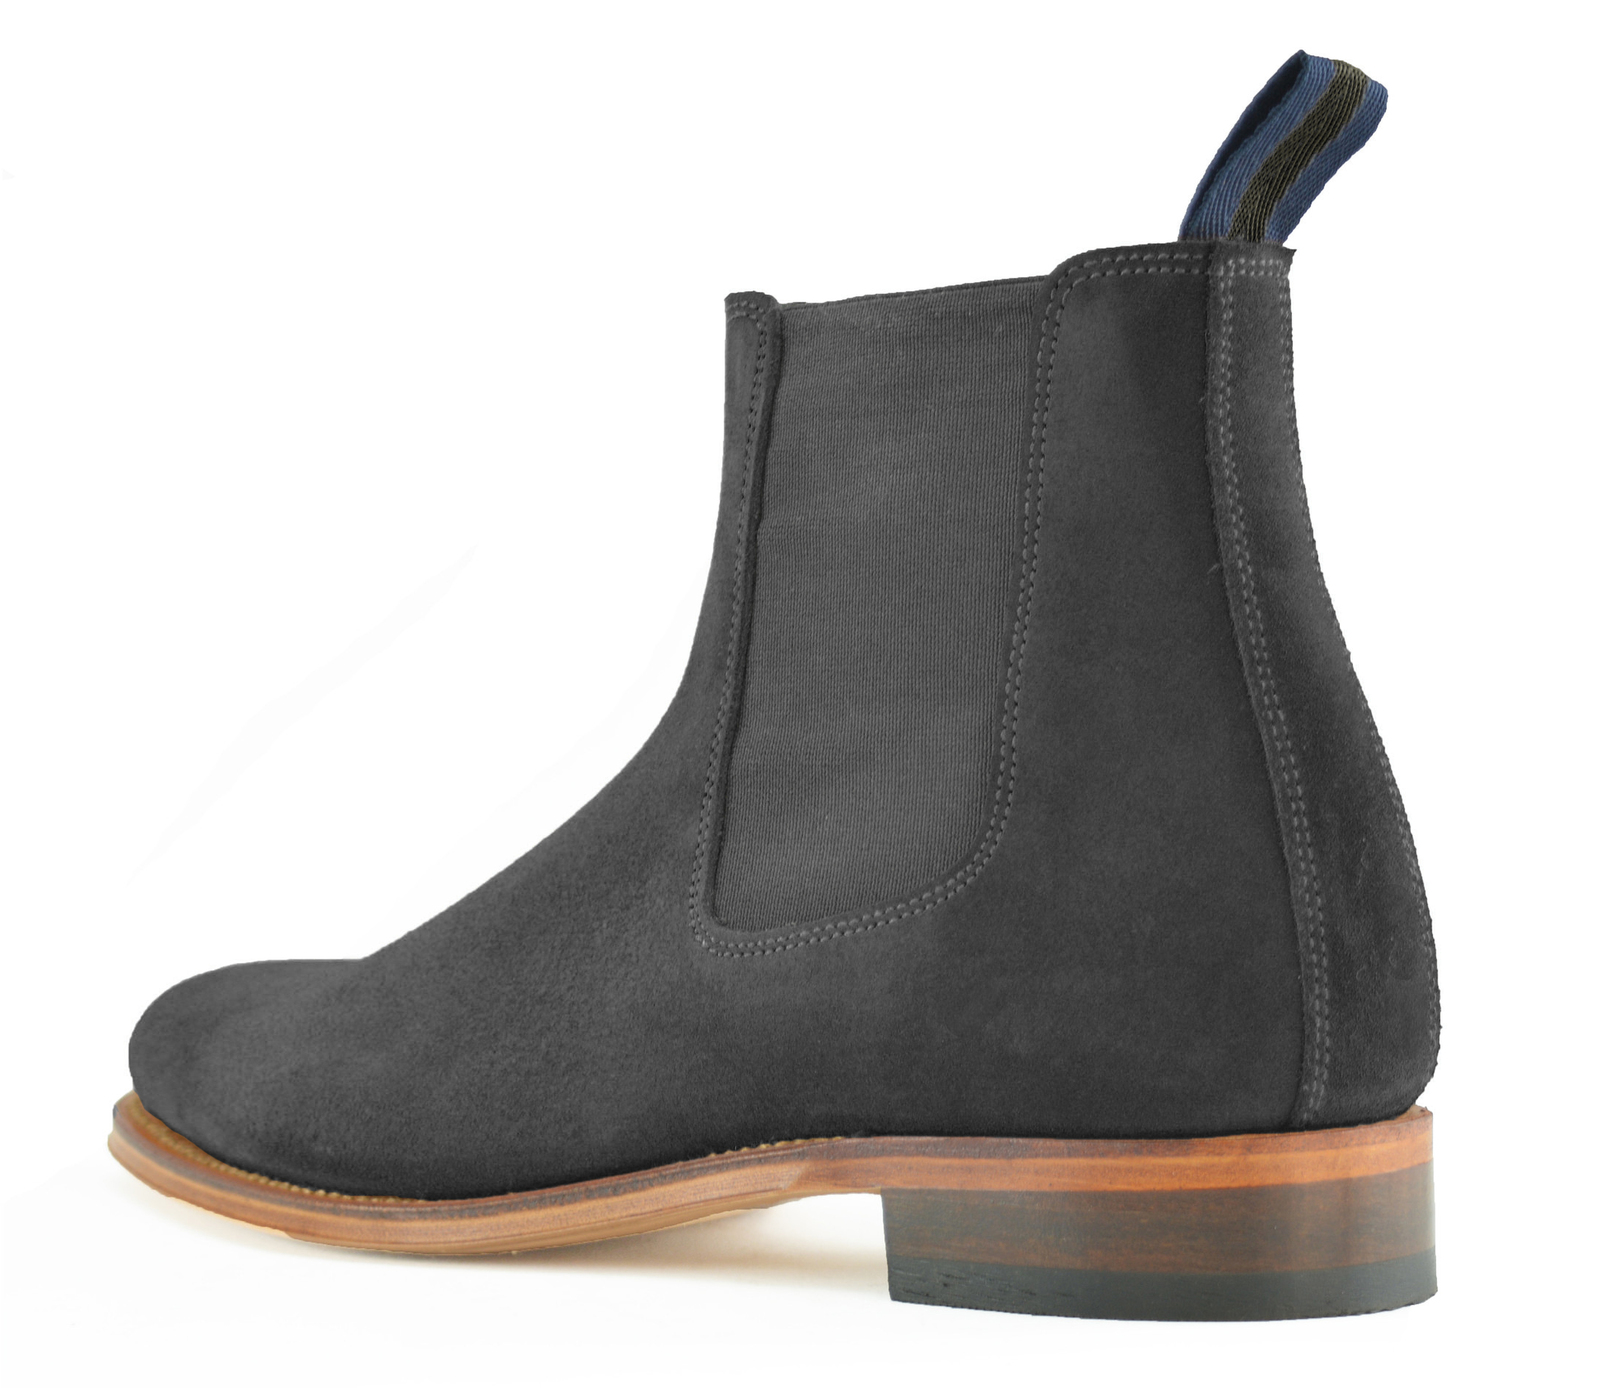 Shop designer leather sole boots at Neiman Marcus, where you will find free shipping on the latest in fashion from top designers. Giorgio Armani Gored Leather Chelsea Boot w/ Rubber Sole Details Giorgio Armani calf leather Chelsea boot. Stacked heel. Round toe. .